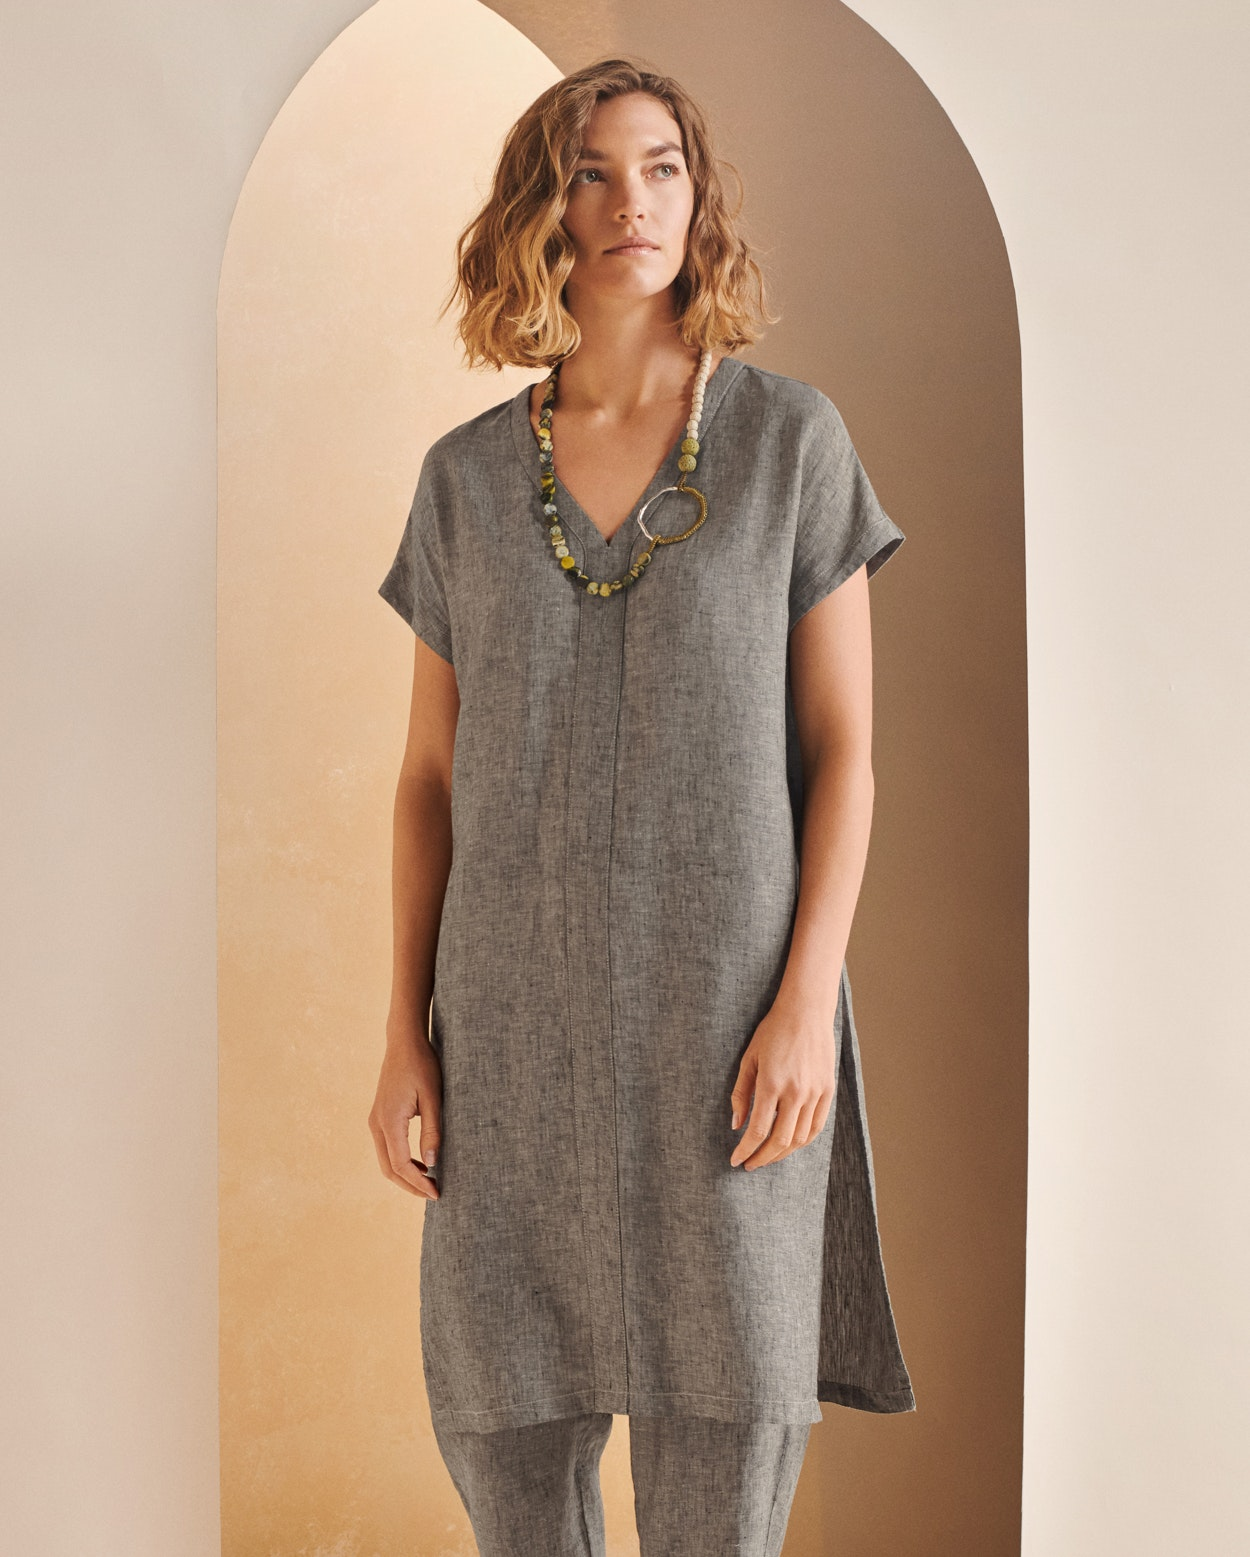 df53e8c8658 Image of Relaxed linen tunic